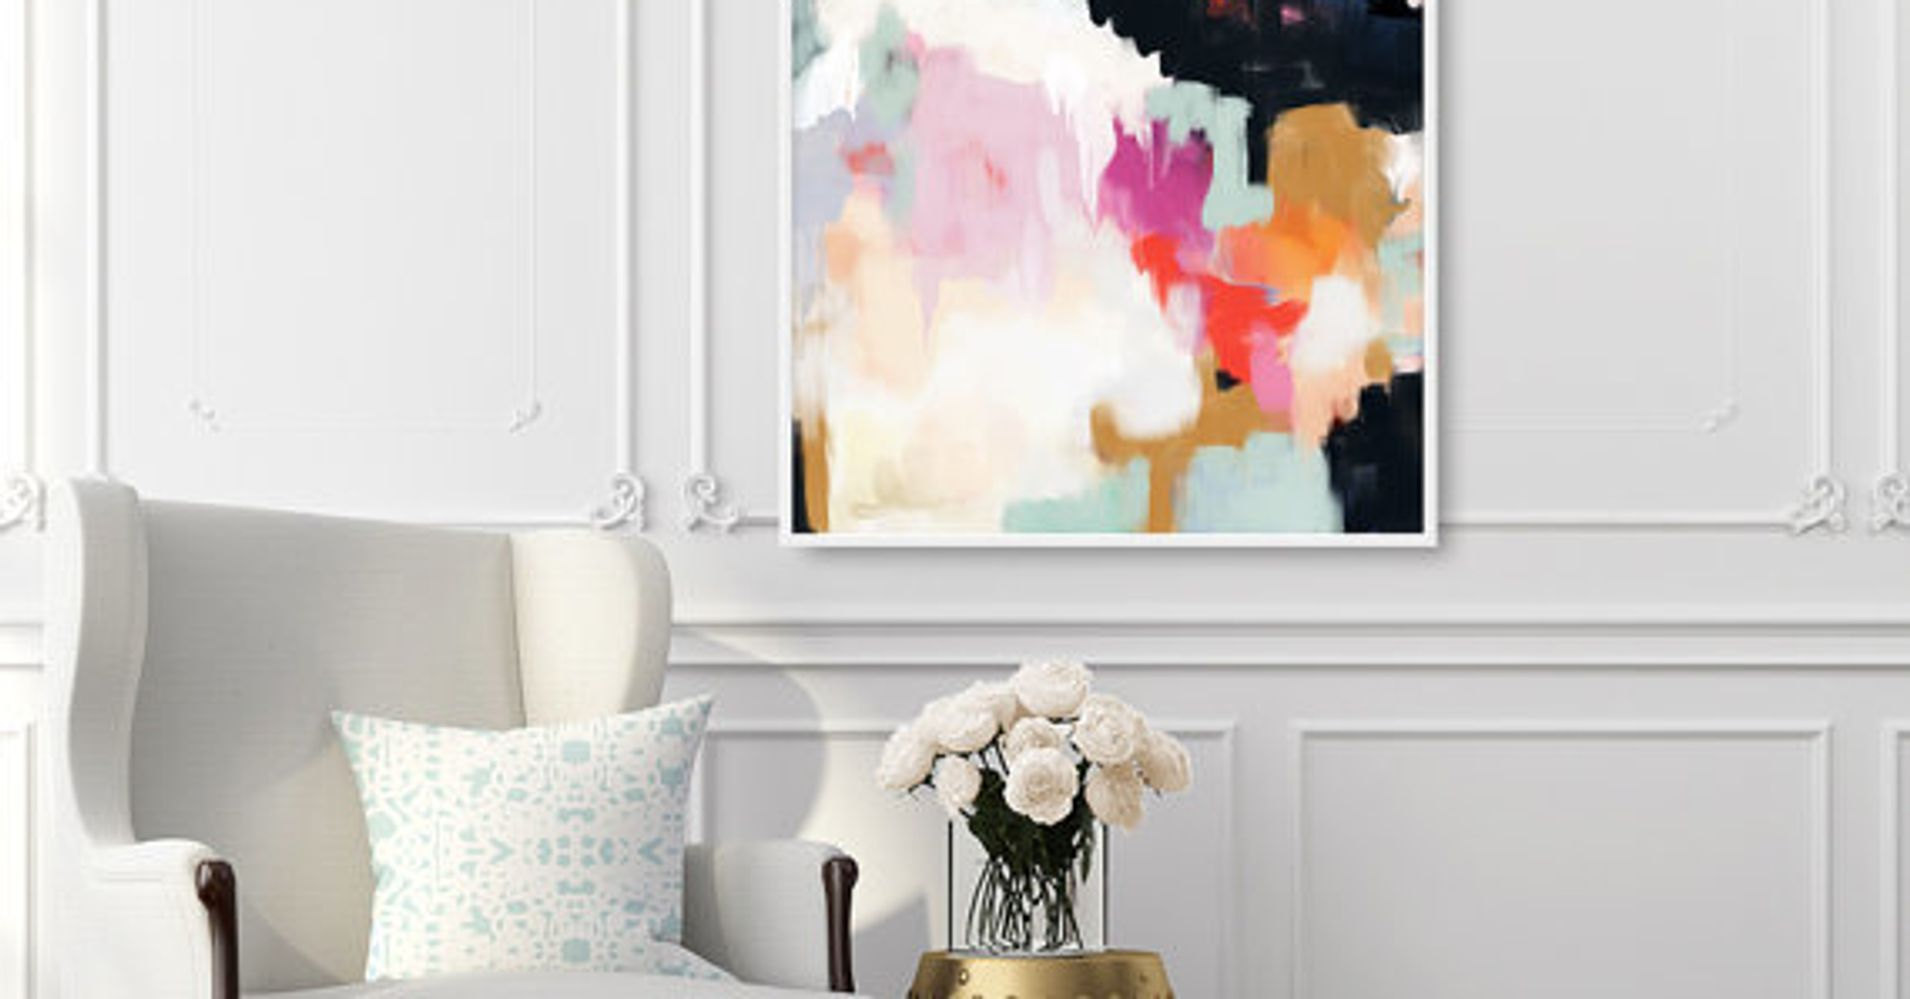 12 Ways To Add Color To A Room Without Paint According To